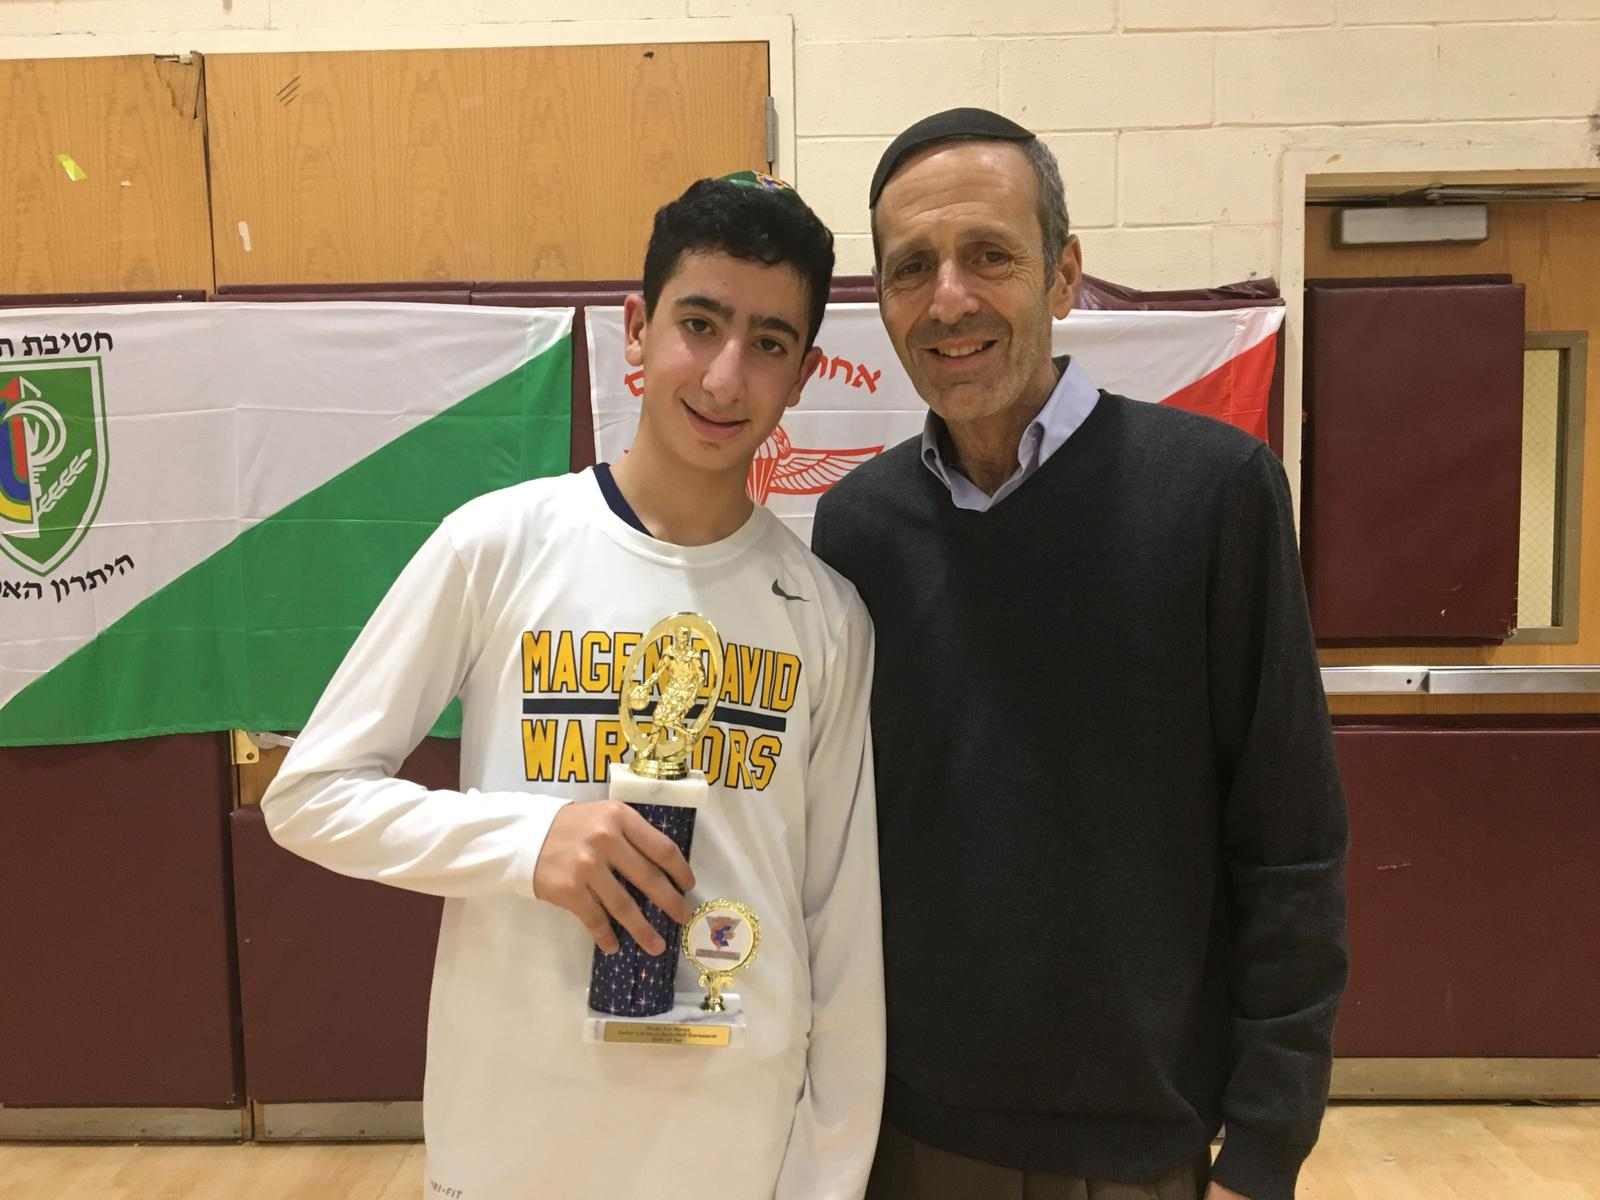 Judah Rhine with the 2018 Basketball champ from Magen David Yeshiva